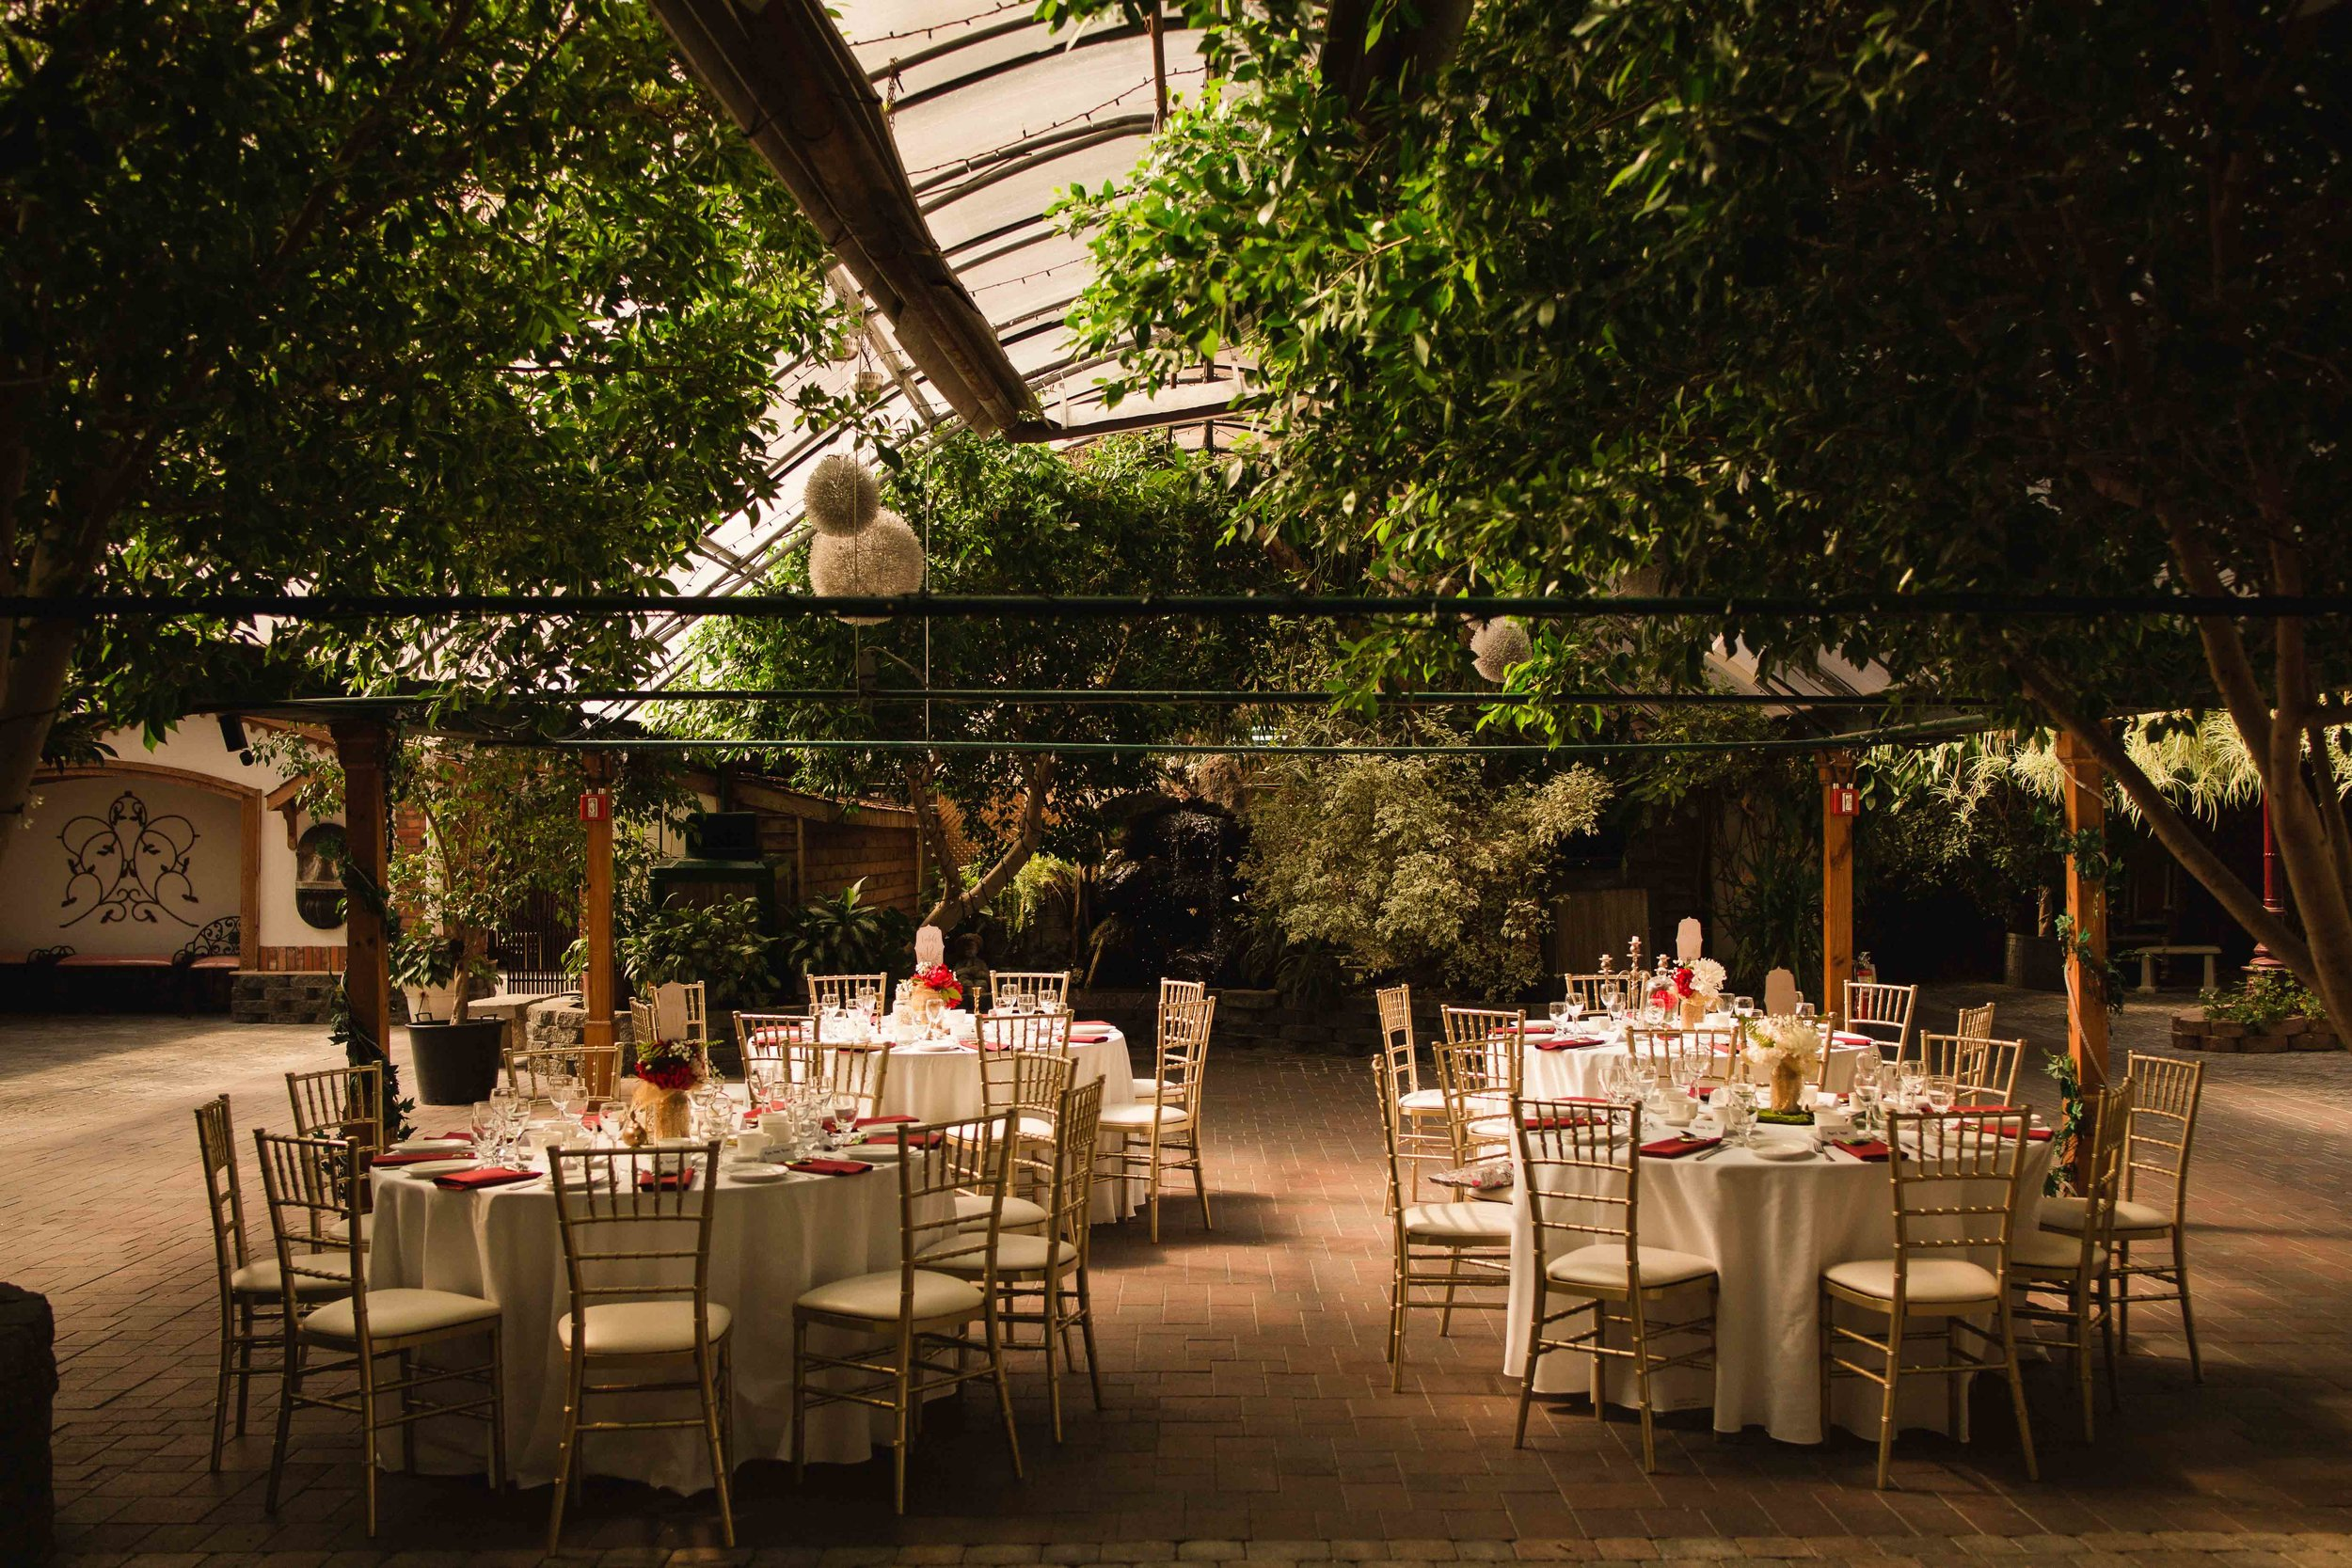 madsensgreenhouseweddingvenue.jpg